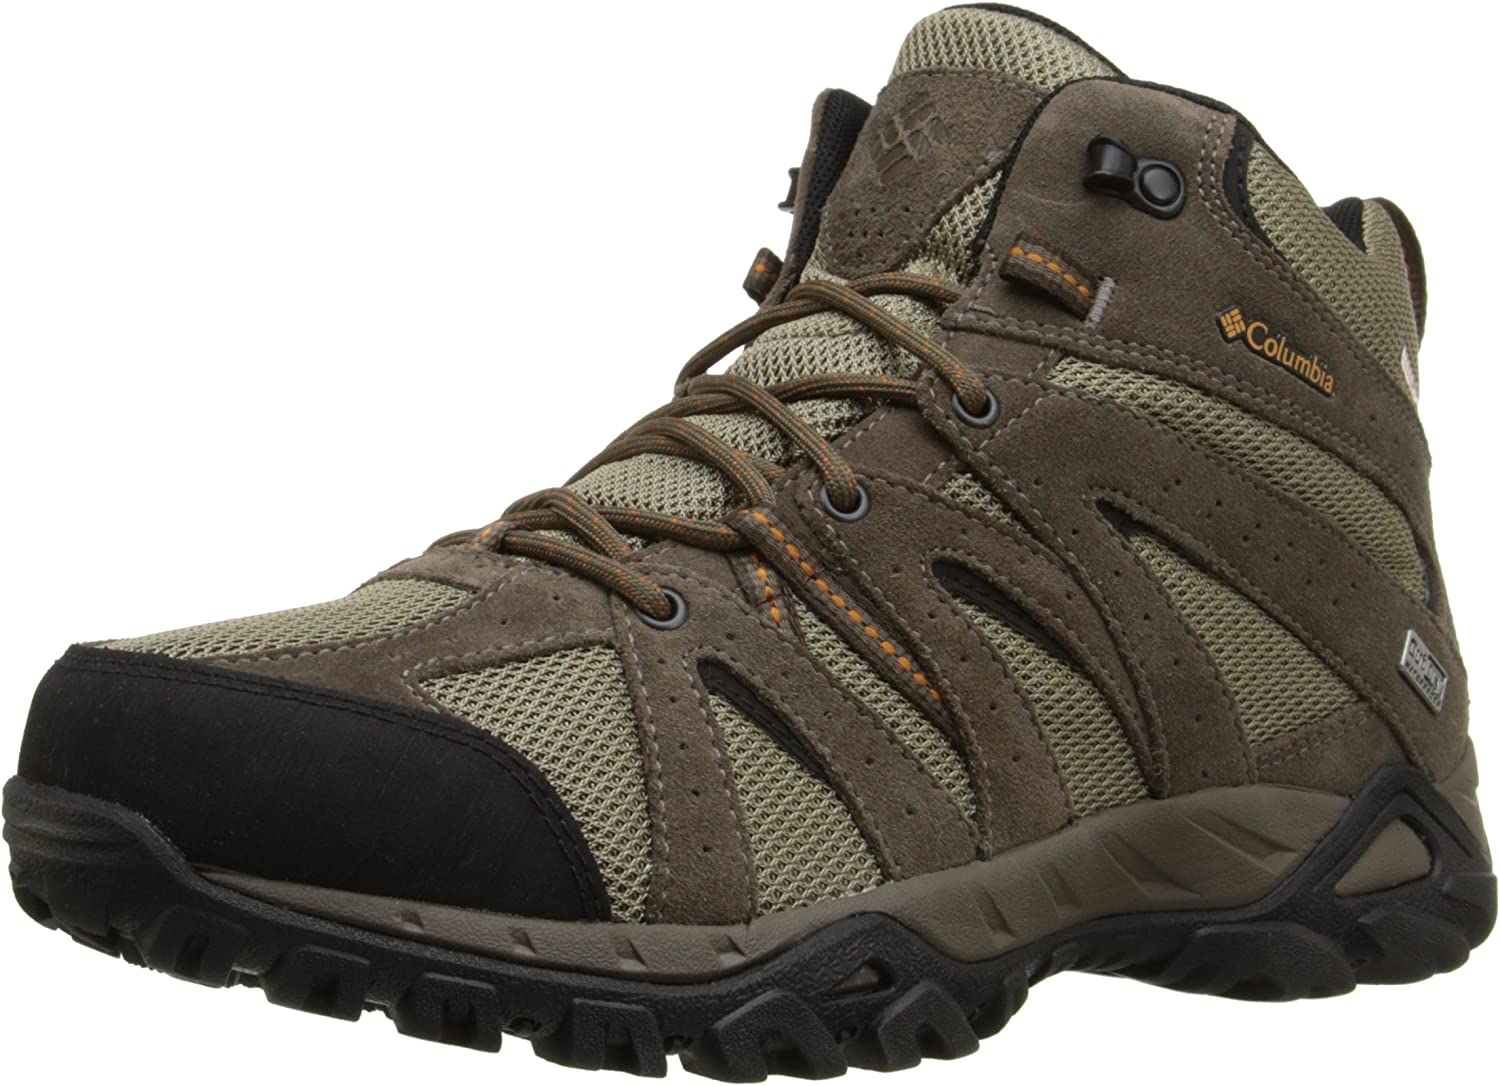 Columbia Men's Grand Canyon Mid Outdry High Rise Hiking Boots